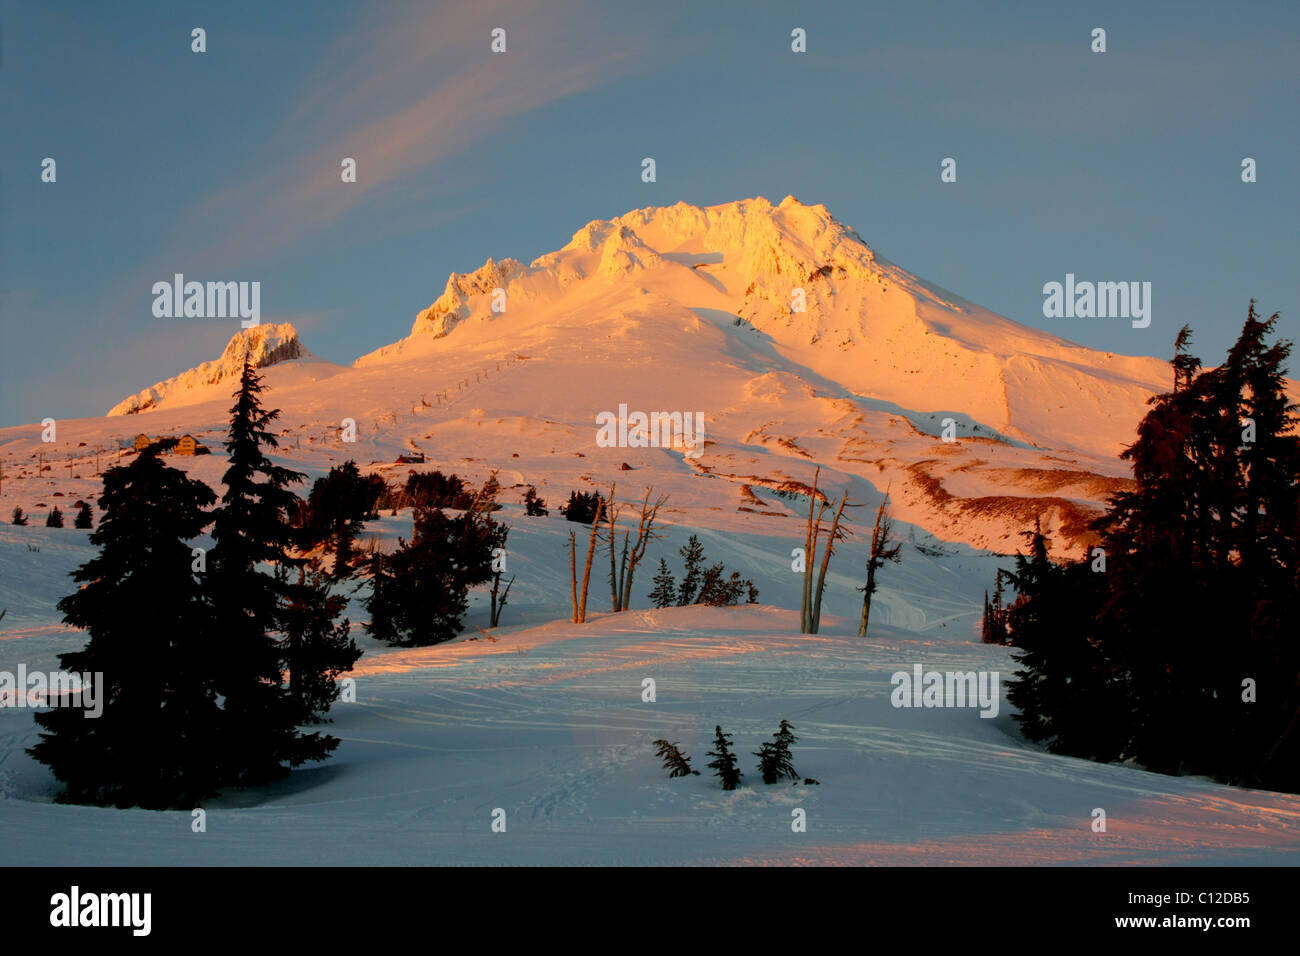 40,171.06371a A snowy jagged topped mountain peak with a bright yellowish glow in a white winter sunset against - Stock Image